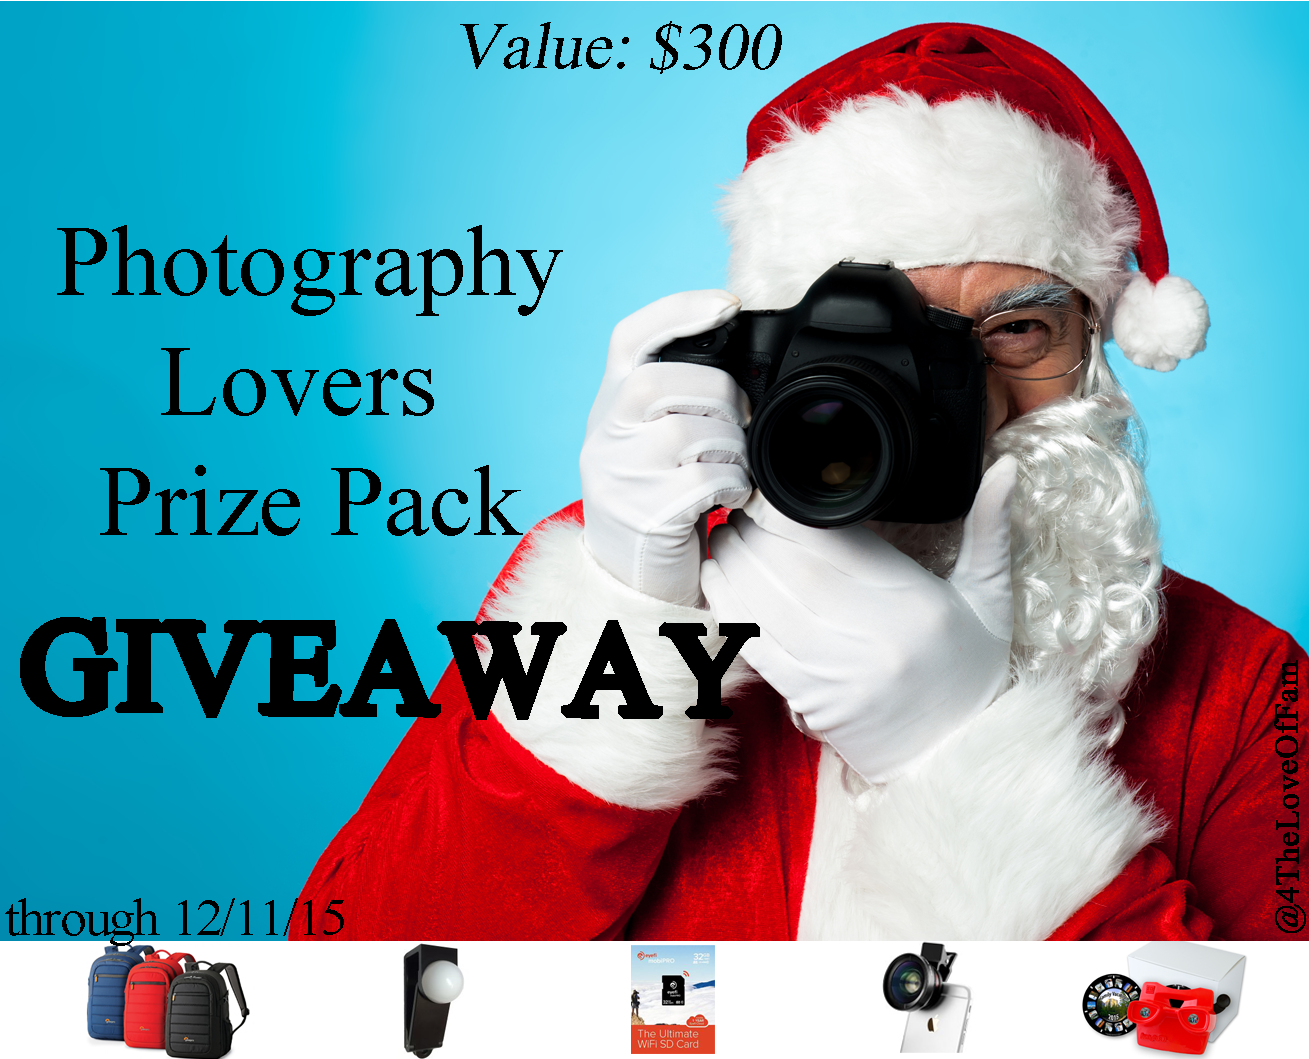 WIN A Photography Lovers' Prize Pack valued at over $300!!! Top Gifts for Photography Lovers Under $100 - A Photographer Holiday Gift Guide